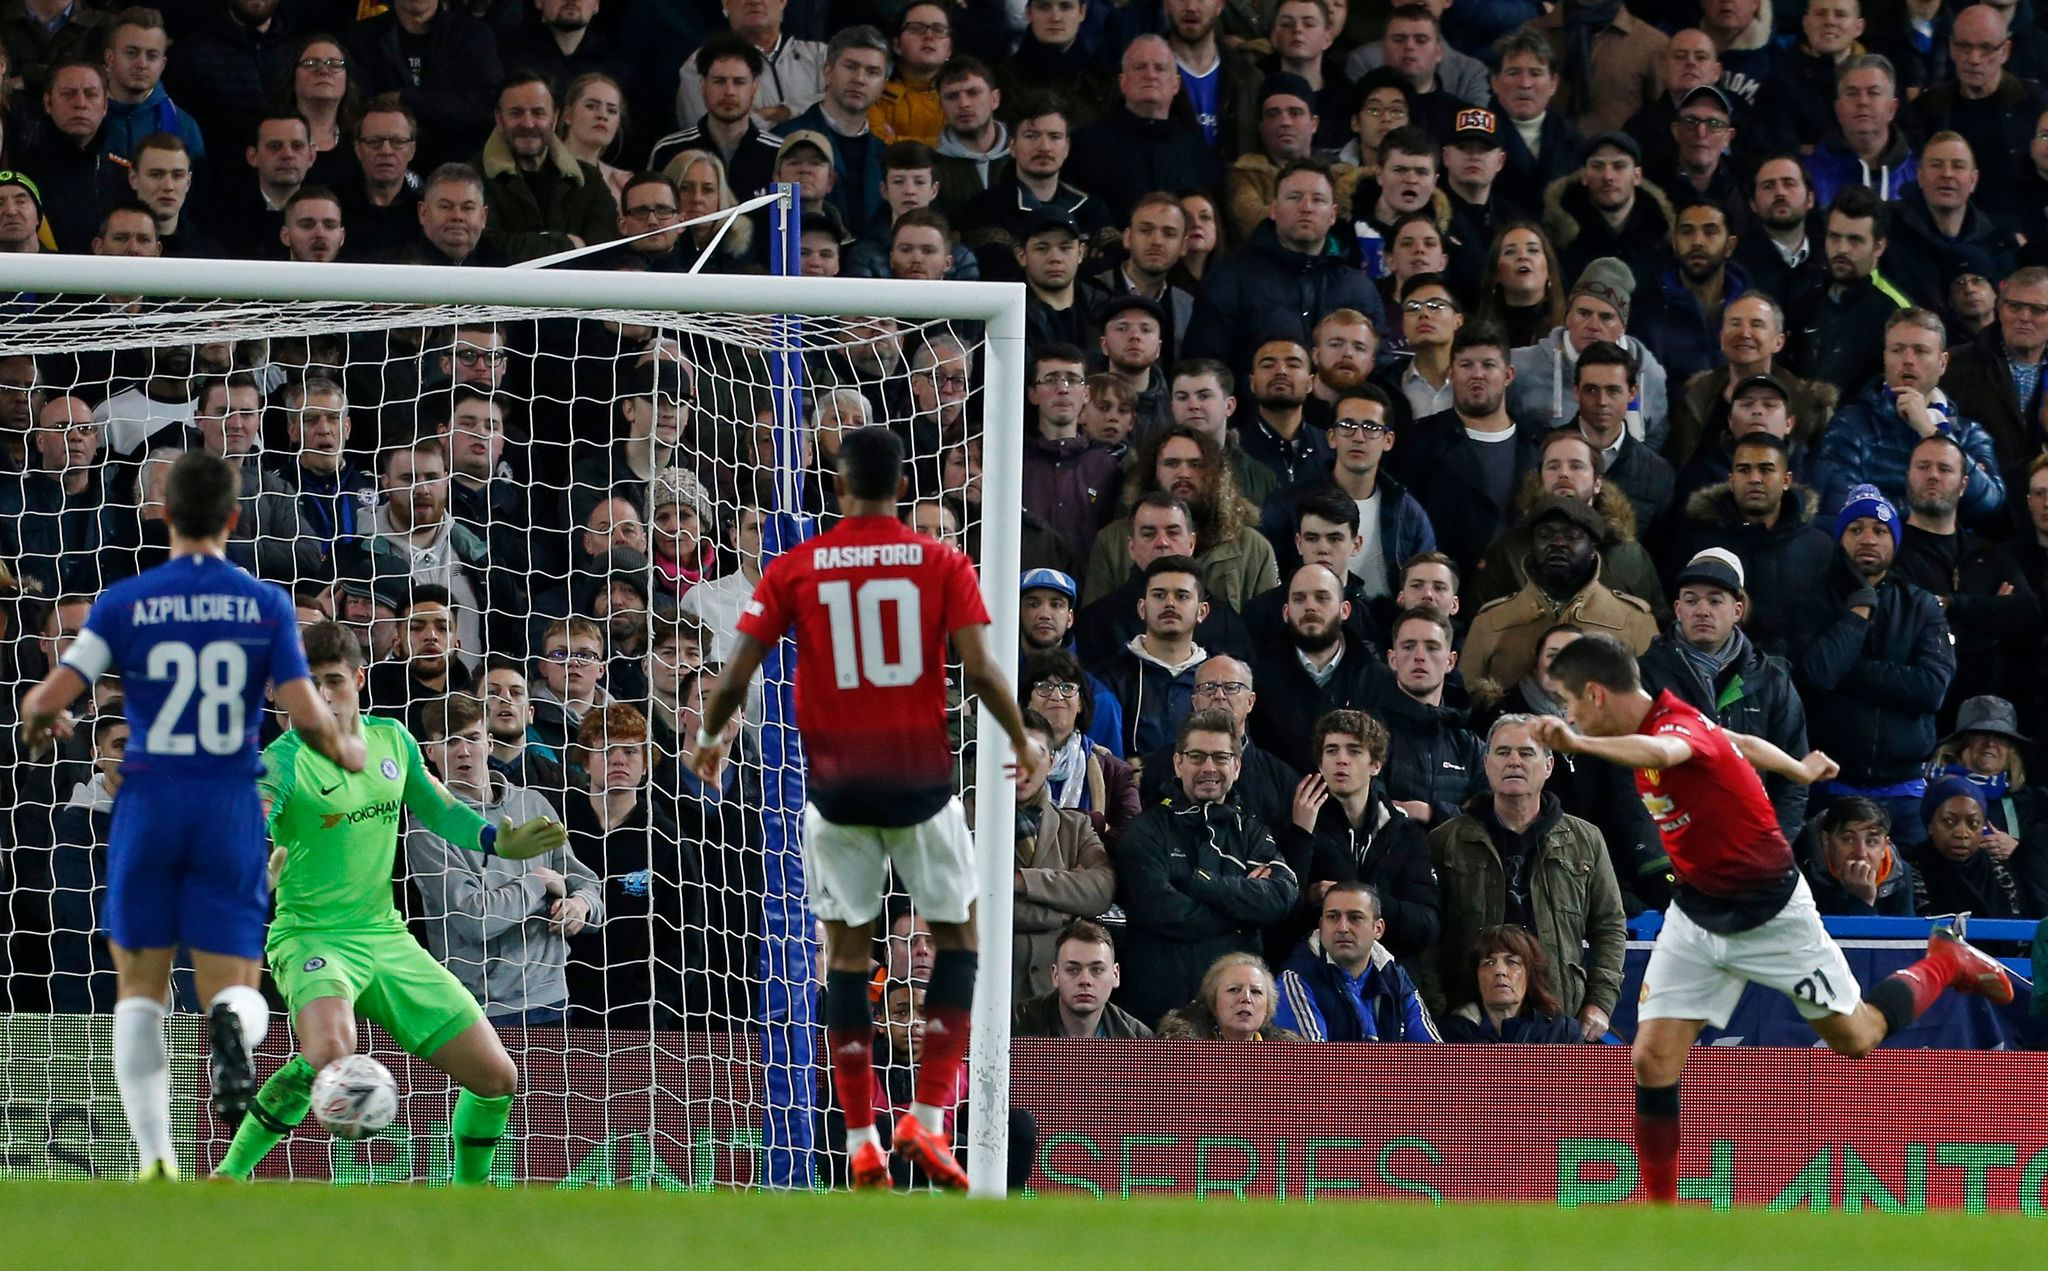 Manchester Uniteds Spanish midfielder <HIT>Ander</HIT><HIT>Herrera</HIT> (R) heads the opening goal past Chelseas Spanish goalkeeper Kepa Arrizabalaga (2nd L) during the English FA Cup fifth round football match between Chelsea and Manchester United at Stamford Bridge in London on February 18, 2019. (Photo by Ian KINGTON / AFP) / RESTRICTED TO EDITORIAL USE. No use with unauthorized audio, video, data, fixture lists, club/league logos or live services. Online in-match use limited to 120 images. An additional 40 images may be used in extra time. No video emulation. Social media in-match use limited to 120 images. An additional 40 images may be used in extra time. No use in betting publications, games or single club/league/player publications. /